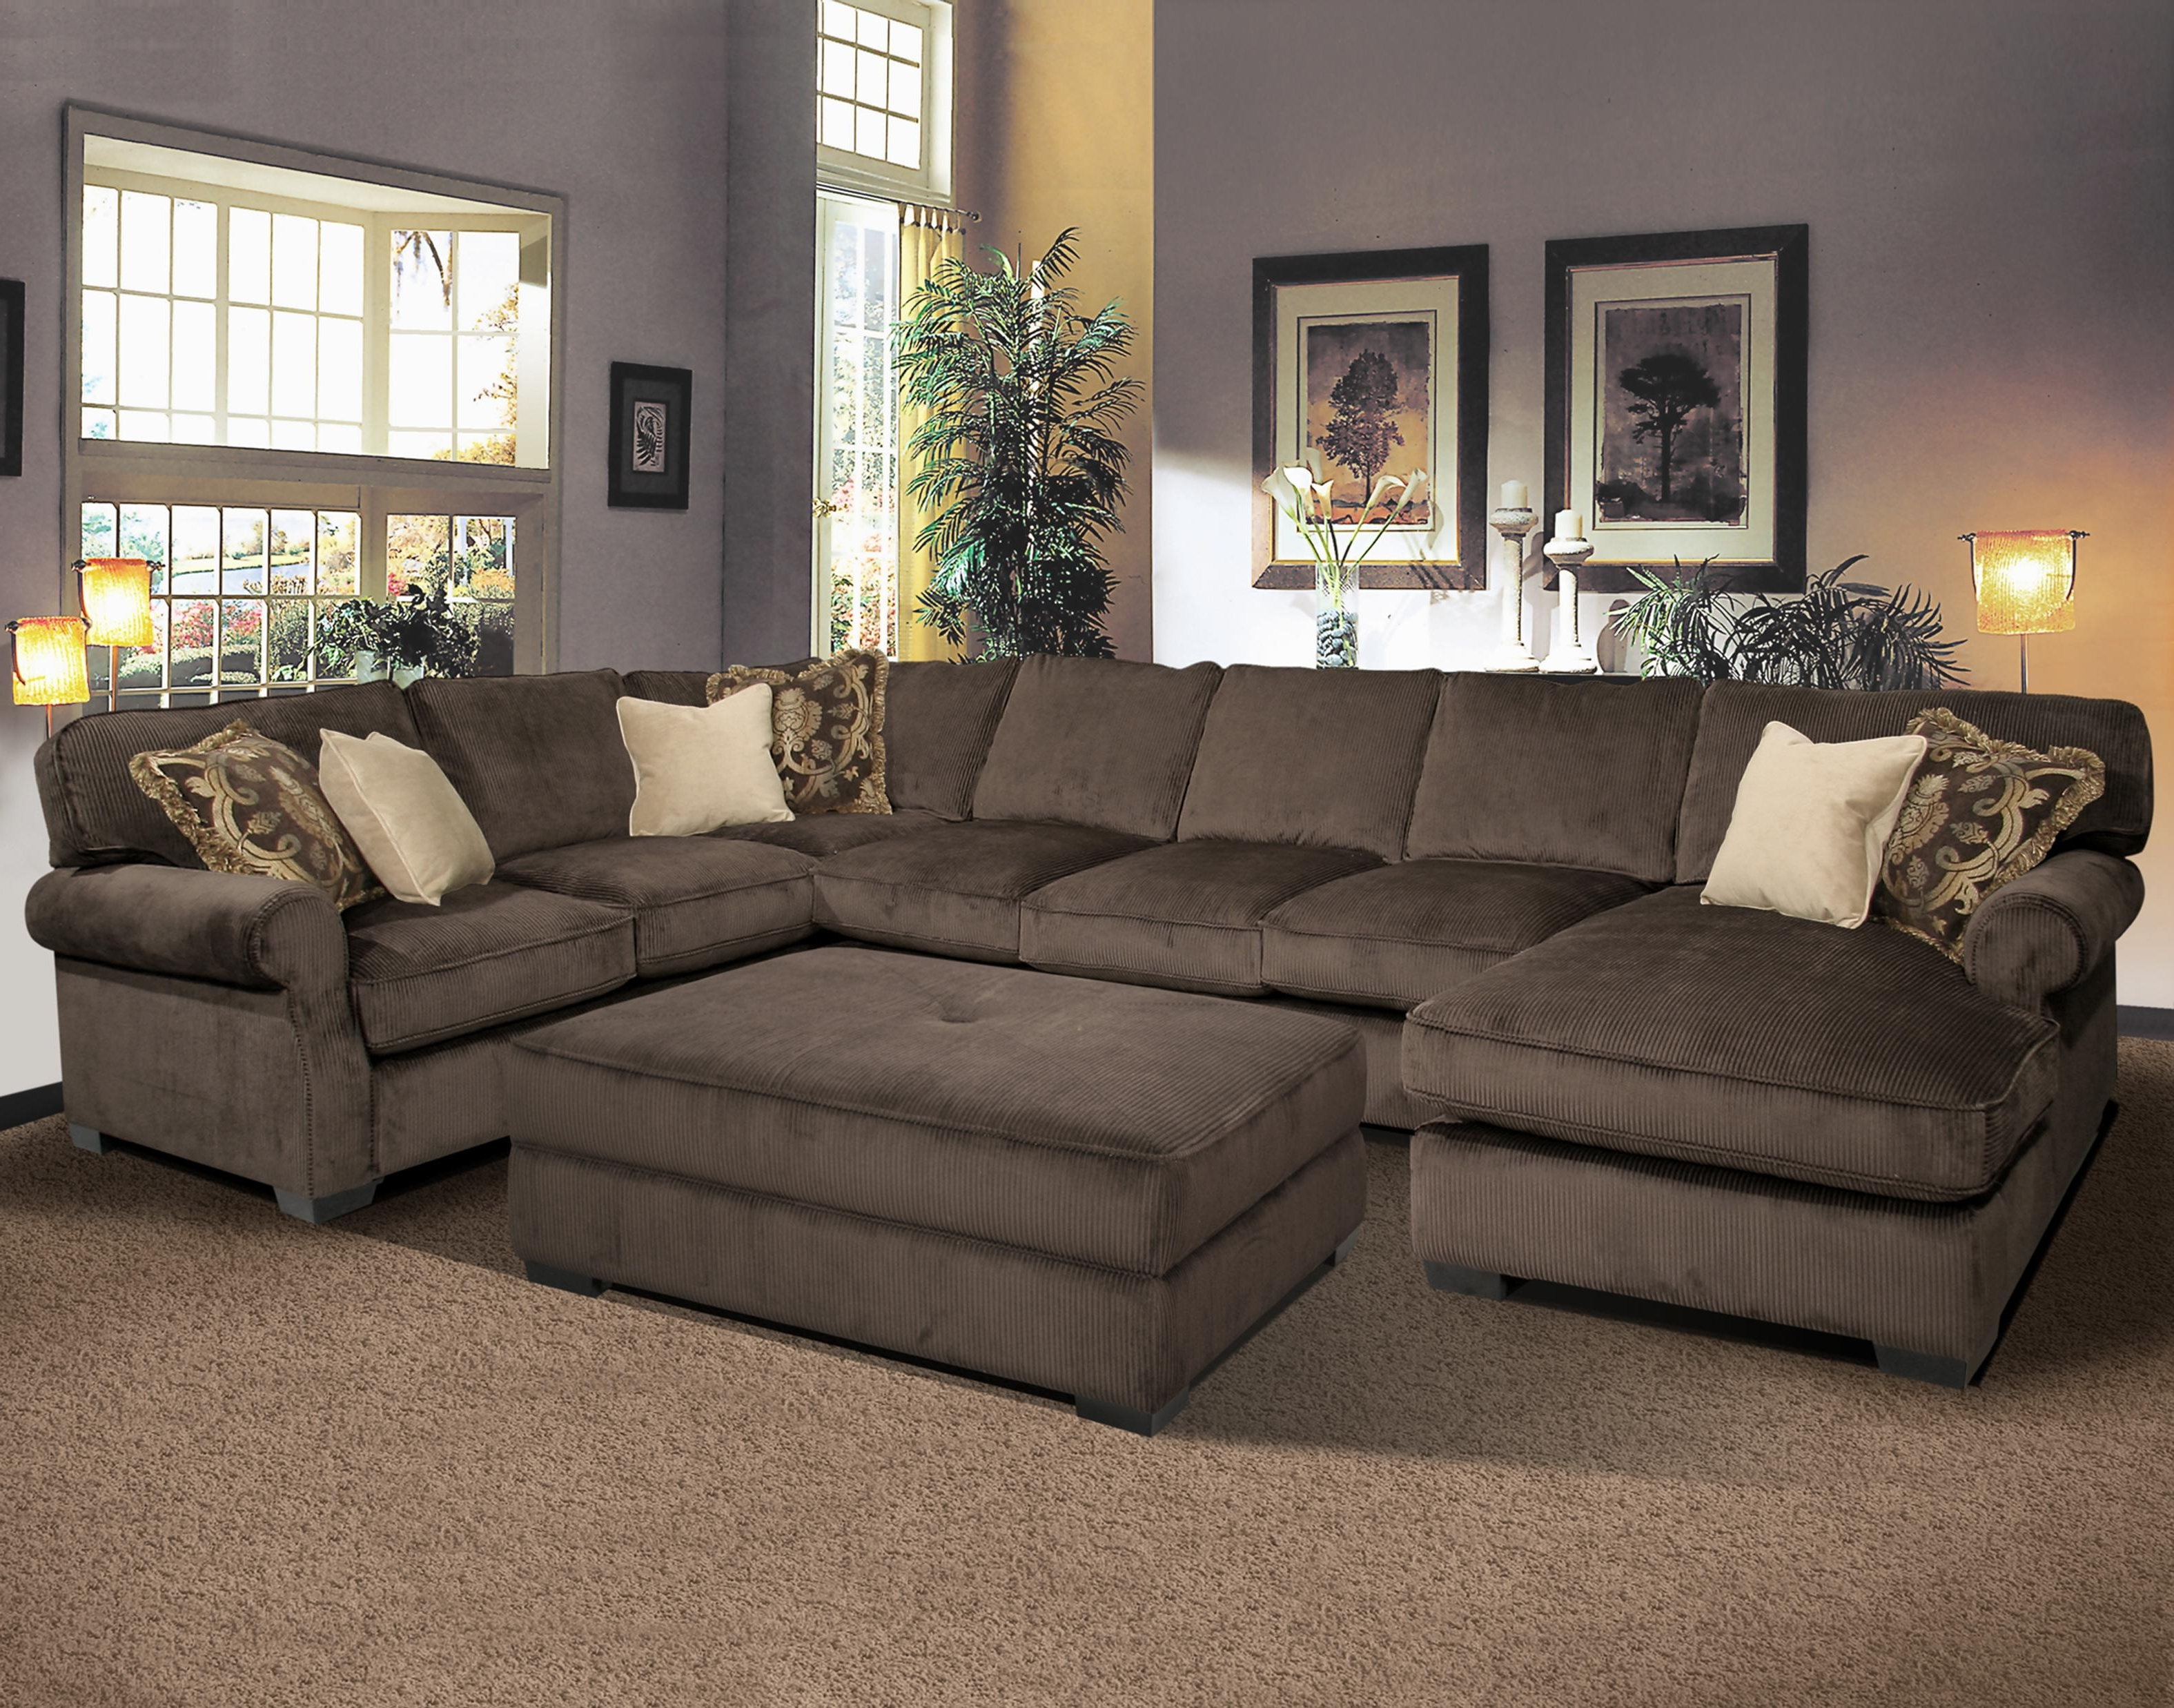 Well Liked On Sale Sectional Sofas Throughout Sofa : Sectional Slipcovers Long Couches For Sale Small L Couch (View 14 of 15)